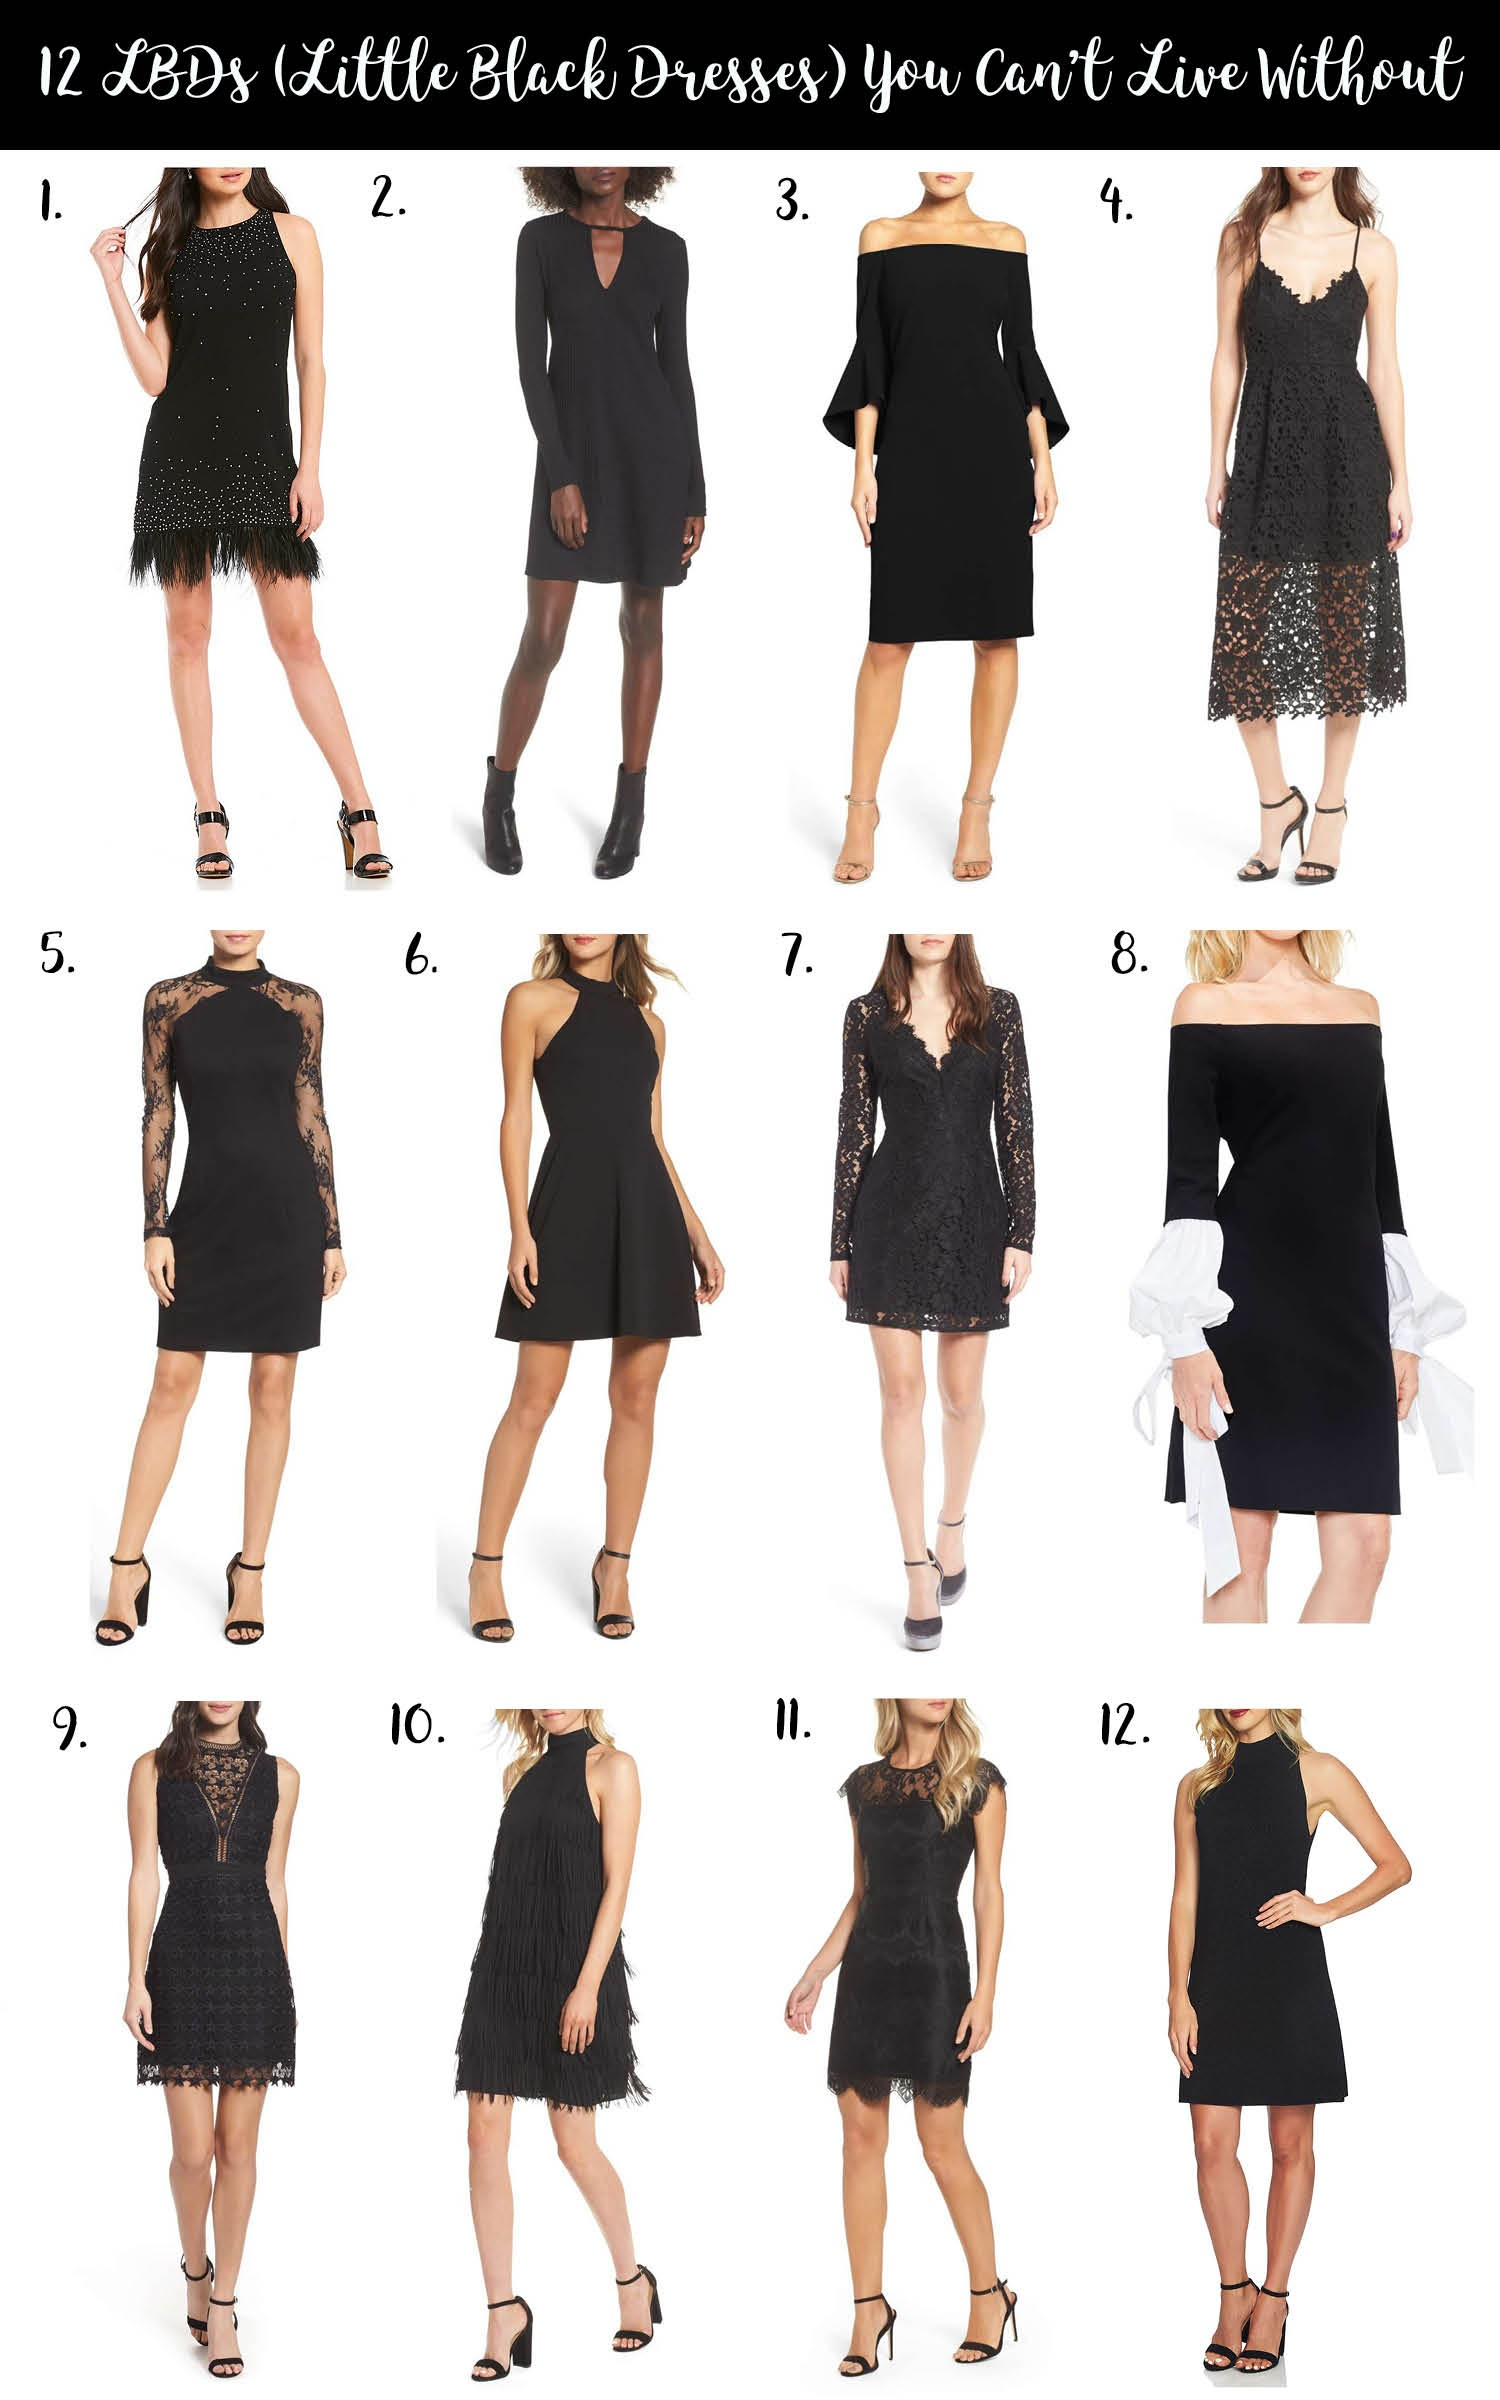 5d3549a55f Shop Little Black Dresses Online - Data Dynamic AG